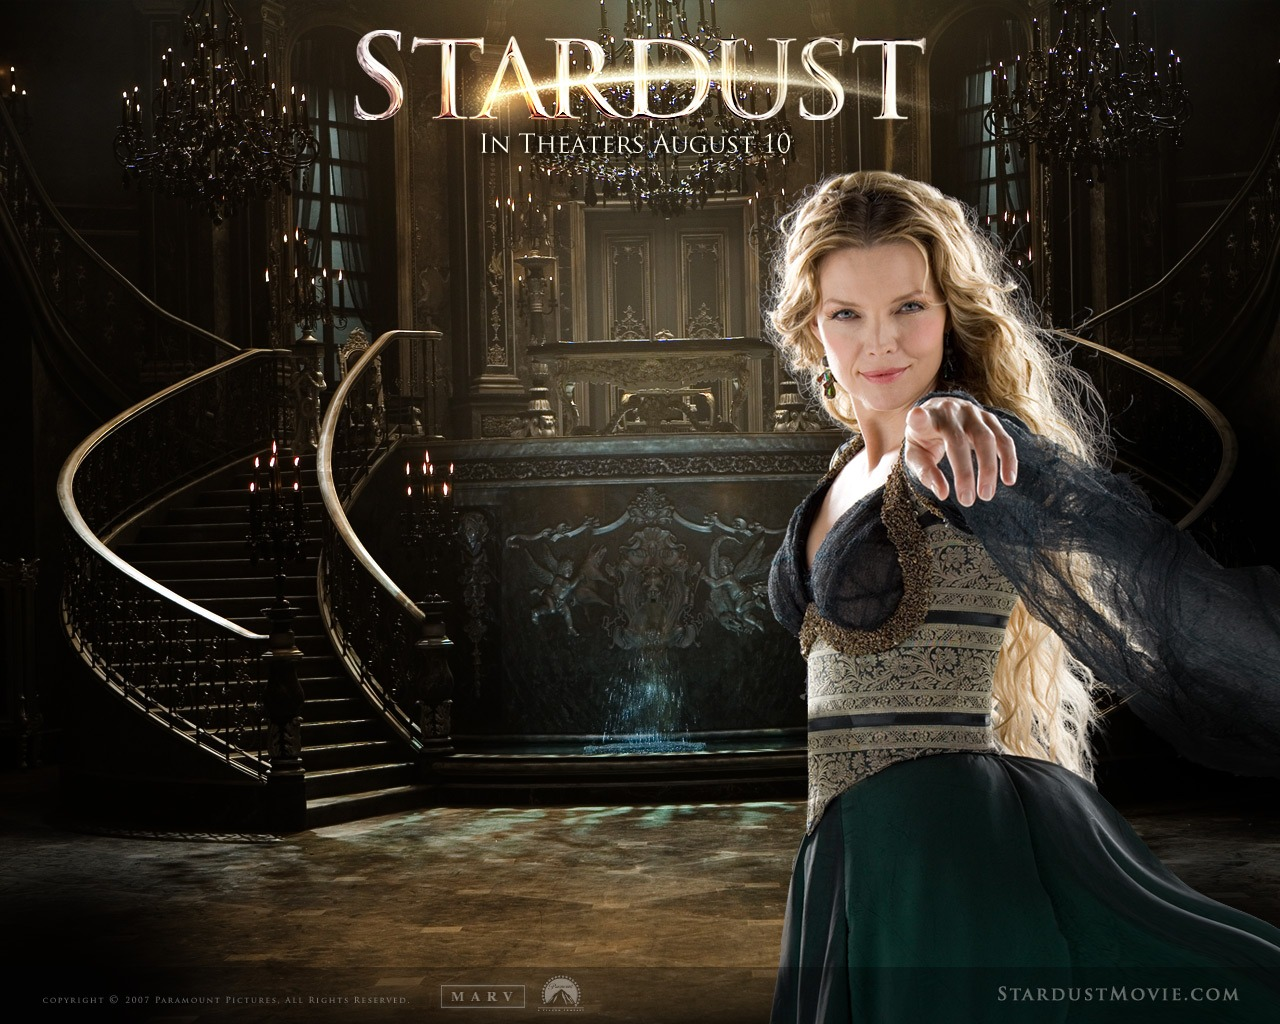 Stardust Tristan Wallpaper Stardust Movies Wallpapers HD